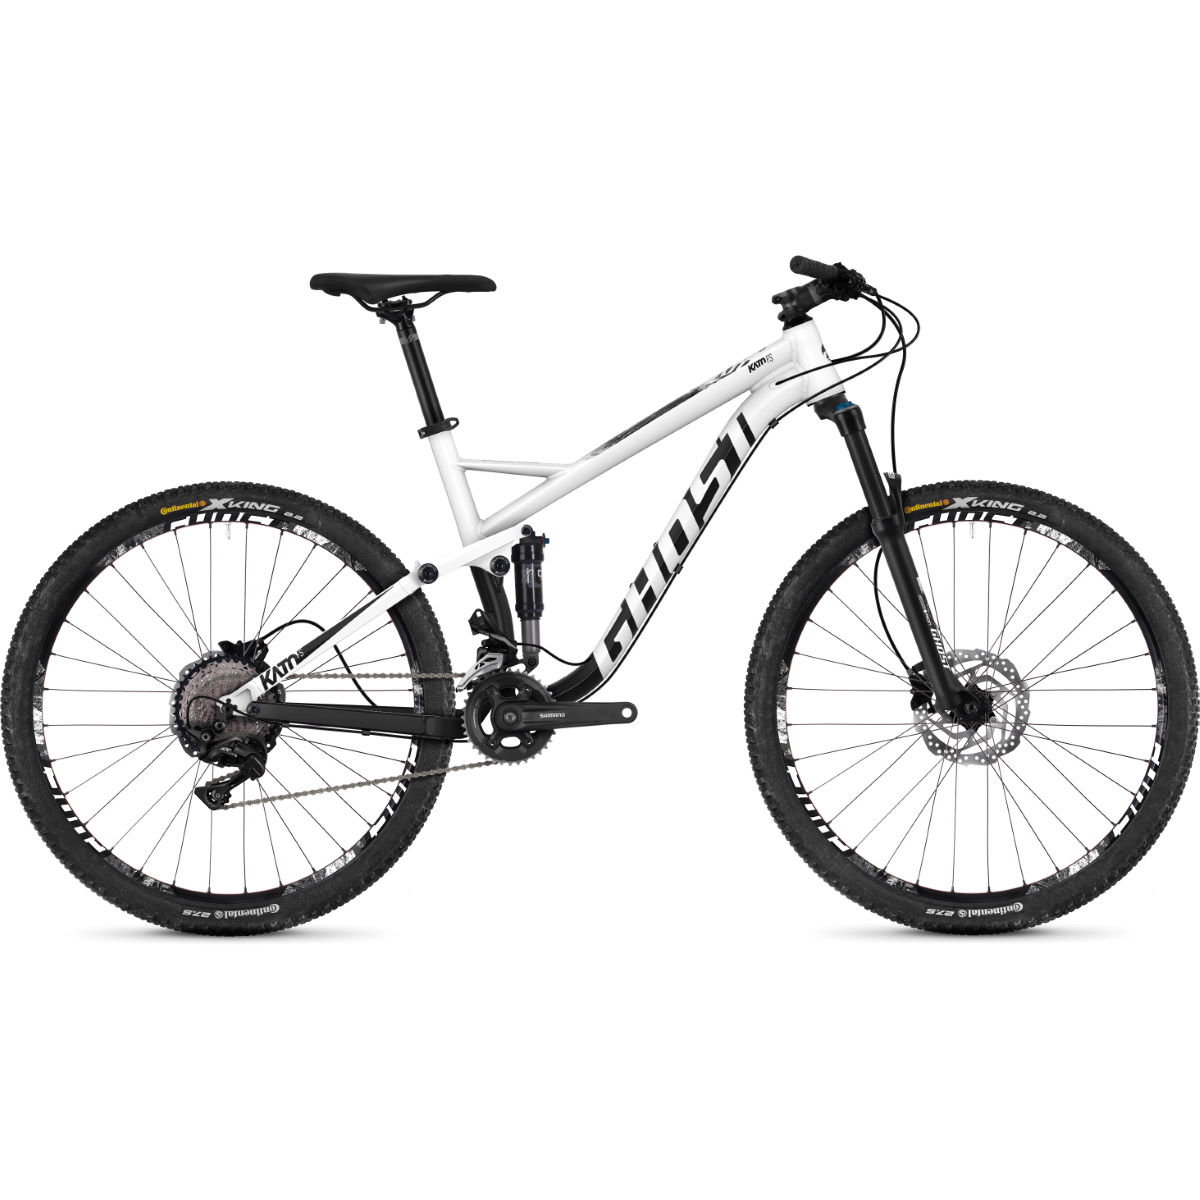 Ghost Kato 3.7 (2018) Full Suspension Bike - Bicicletas de MTB de doble suspensión